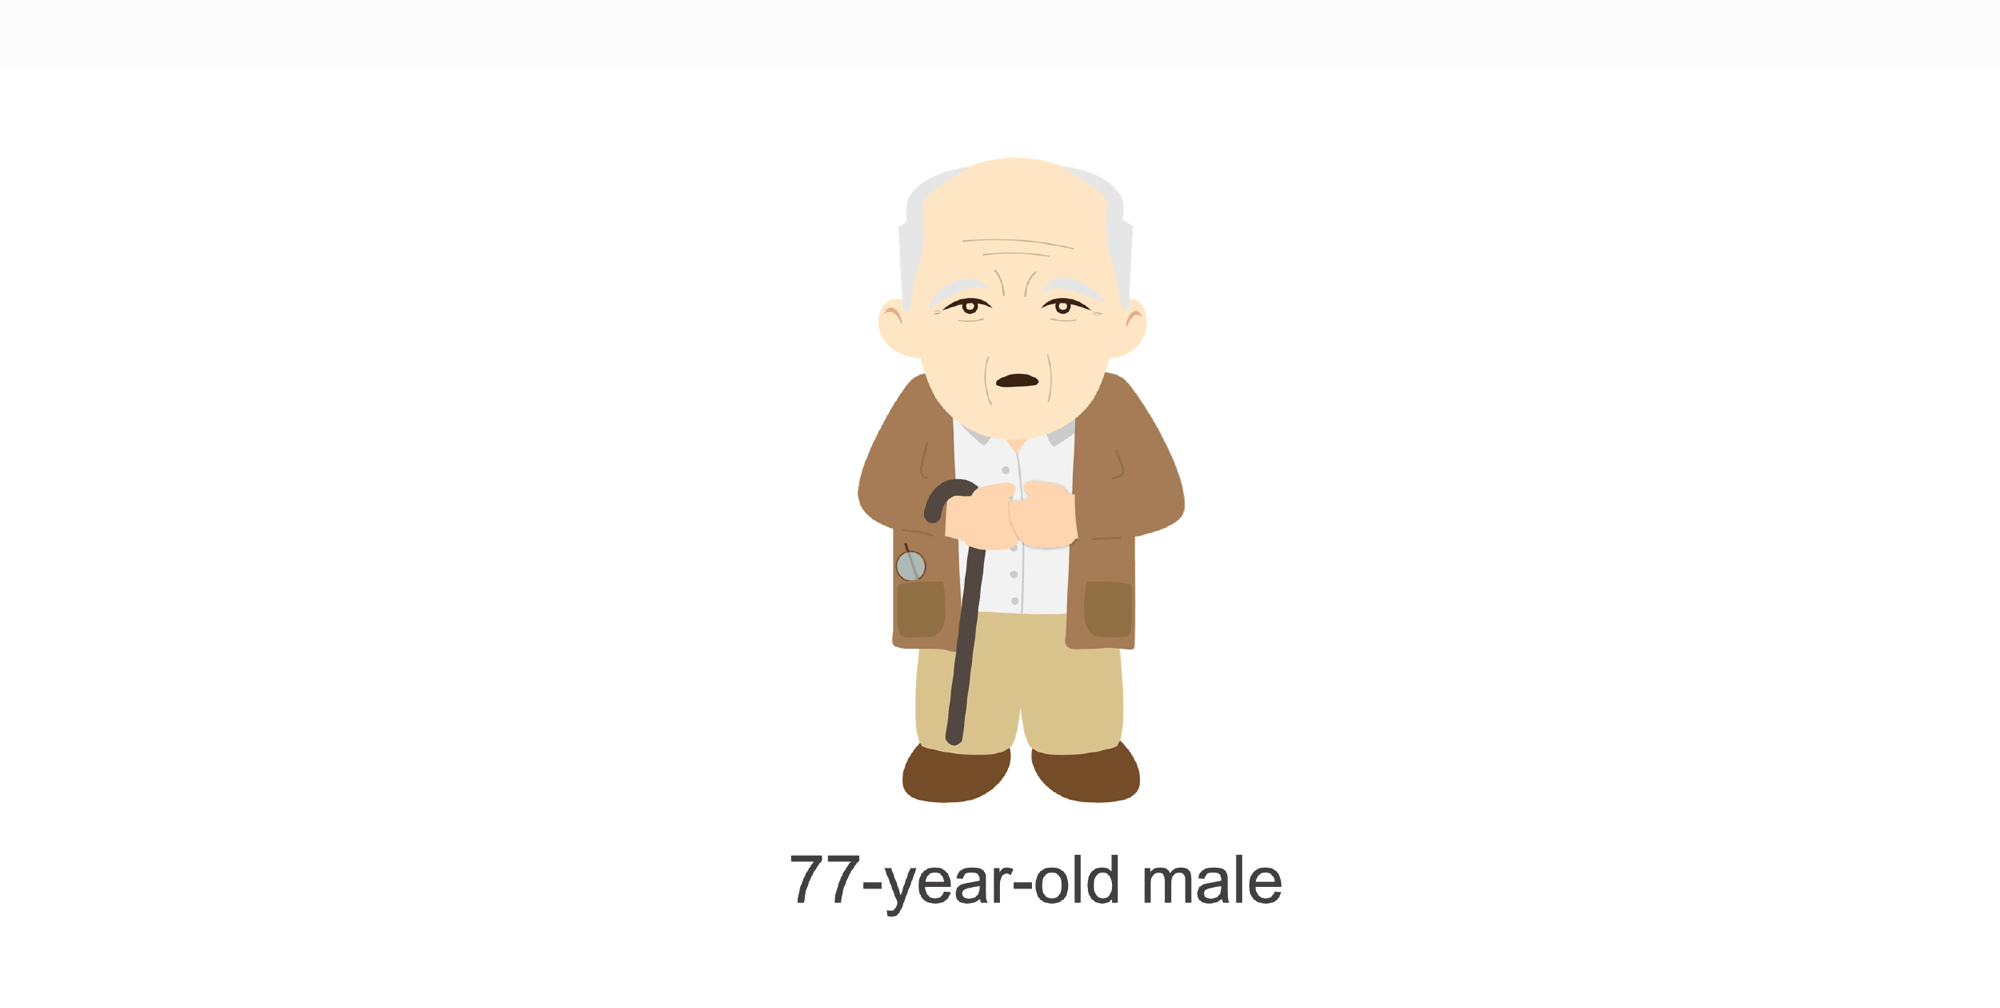 77-year-old male. Illustration.